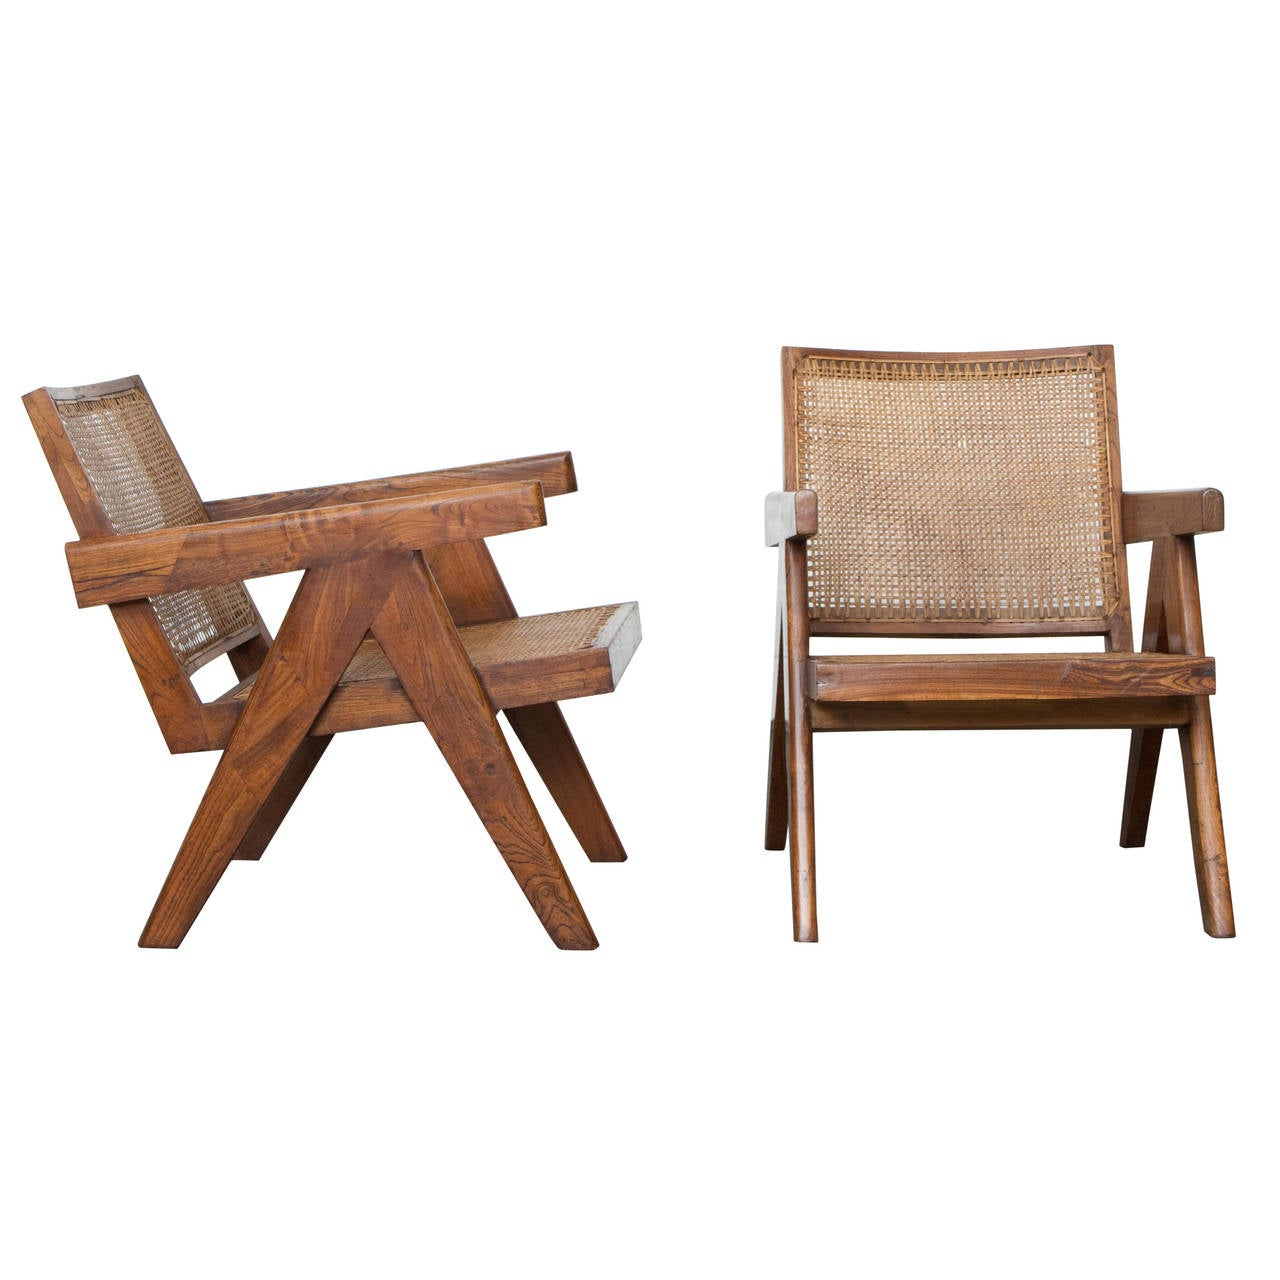 Pierre Jeanneret Pair of Lounge Chairs, circa 1955 For Sale